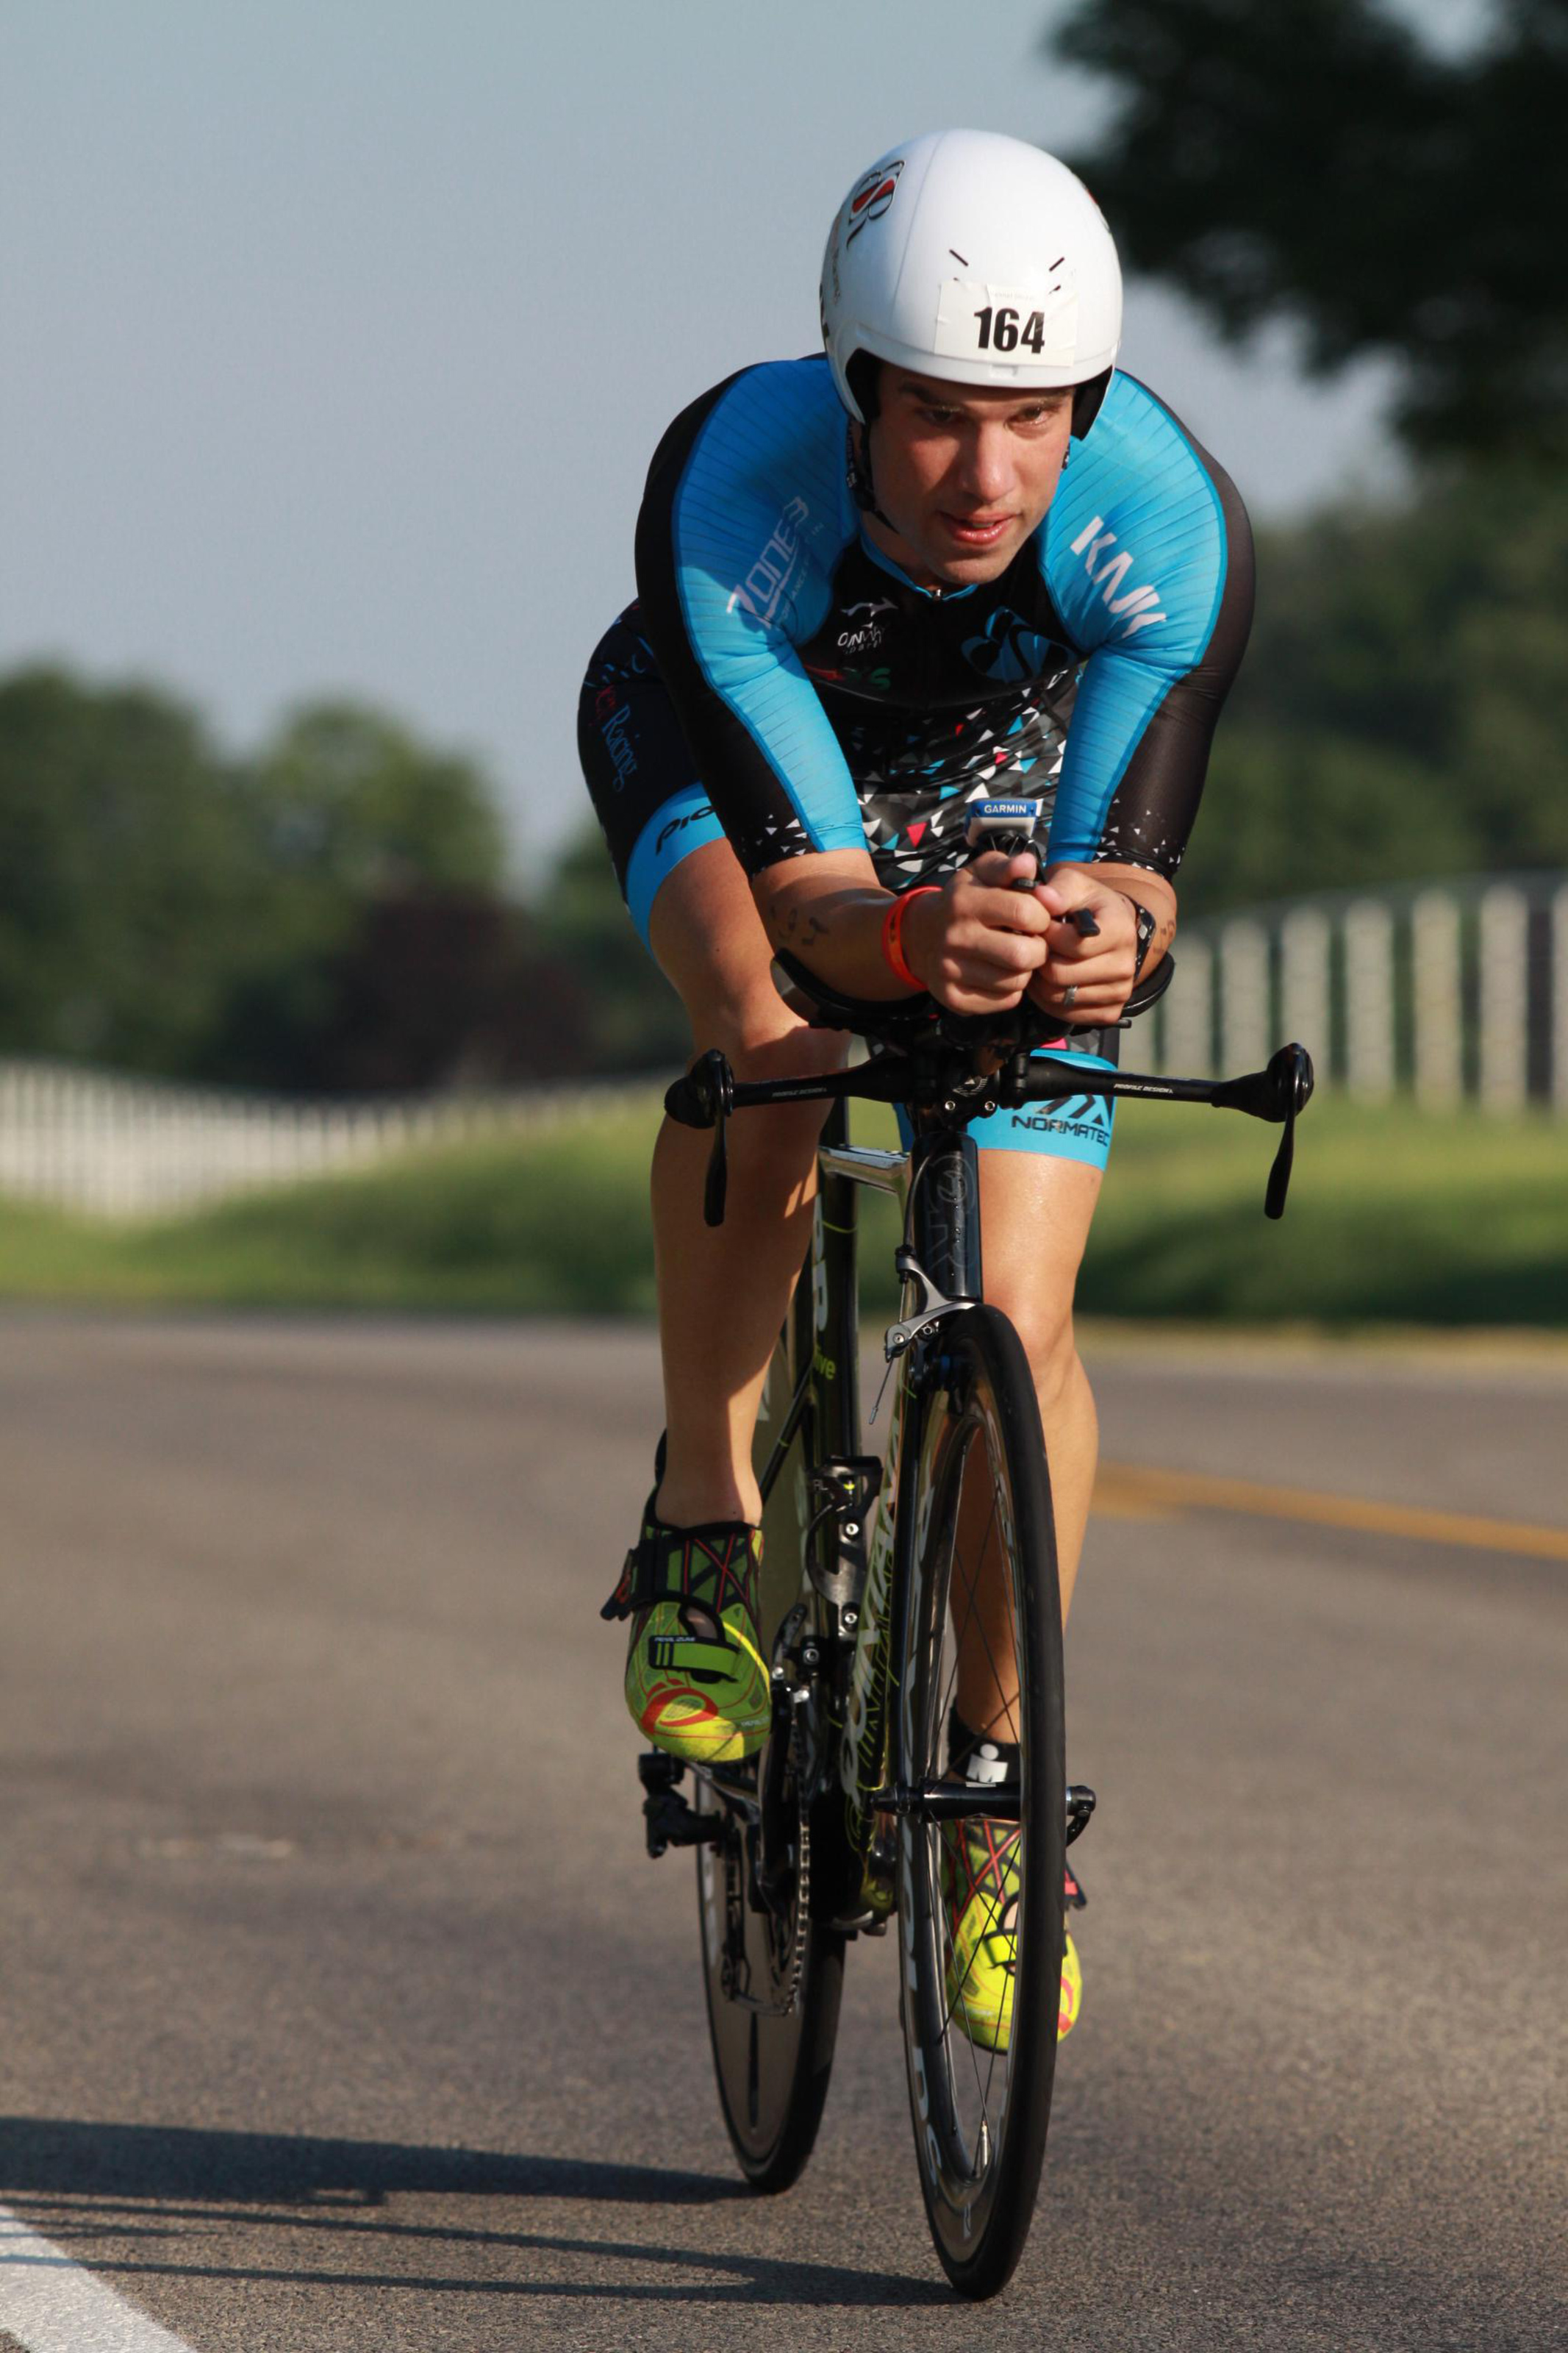 Coach_Terry_Wilson_Pursuit_of_The_Perfect_Race_IRONMAN_Muncie_70.3_Jason_Tucker_4.JPG